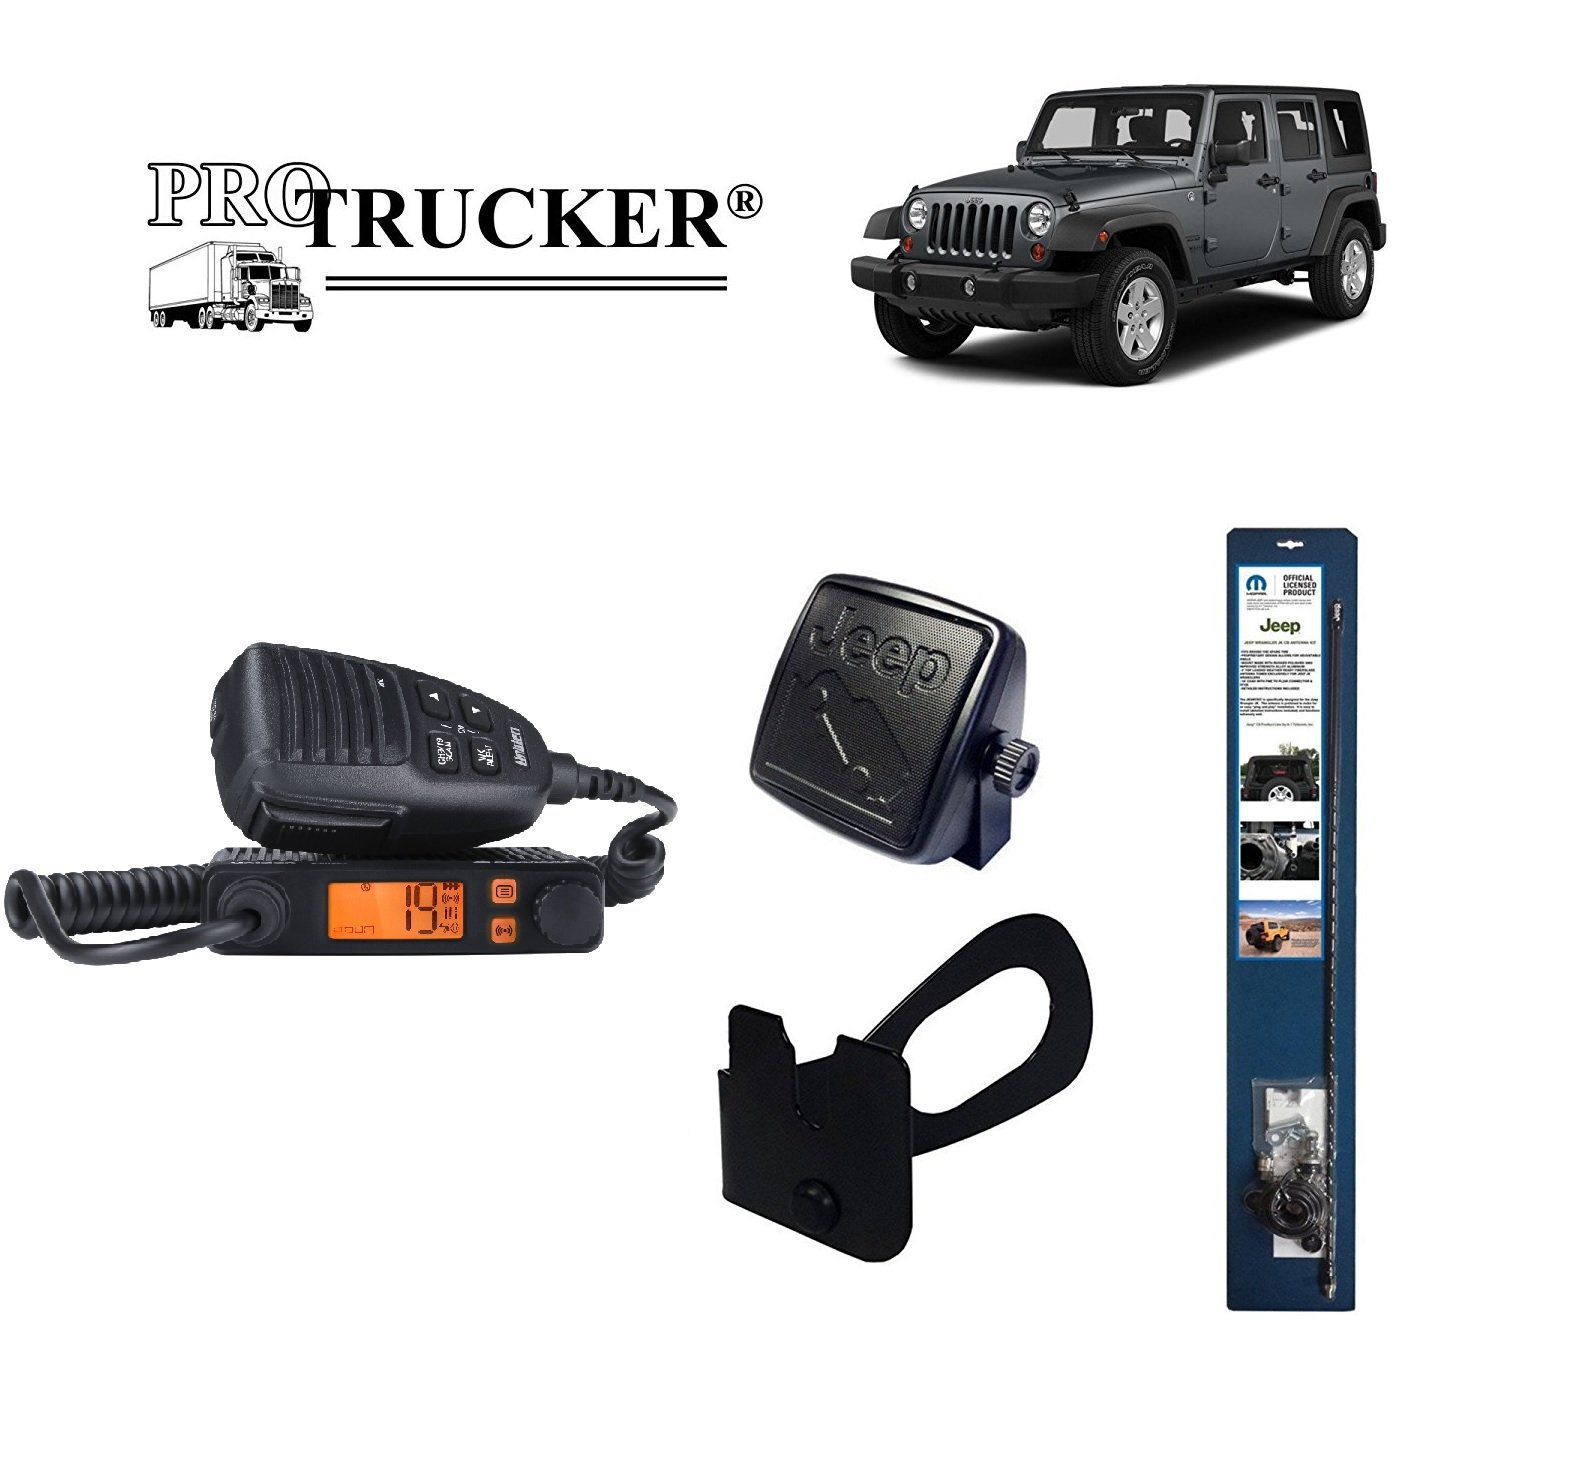 Pro Trucker 2007-Present Jeep JK CB Radio Complete Kit with Handheld CB Radio, 3' Mopar Antenna, Mount, Coax, Speaker, and Grab Bar Mount by Pro Trucker